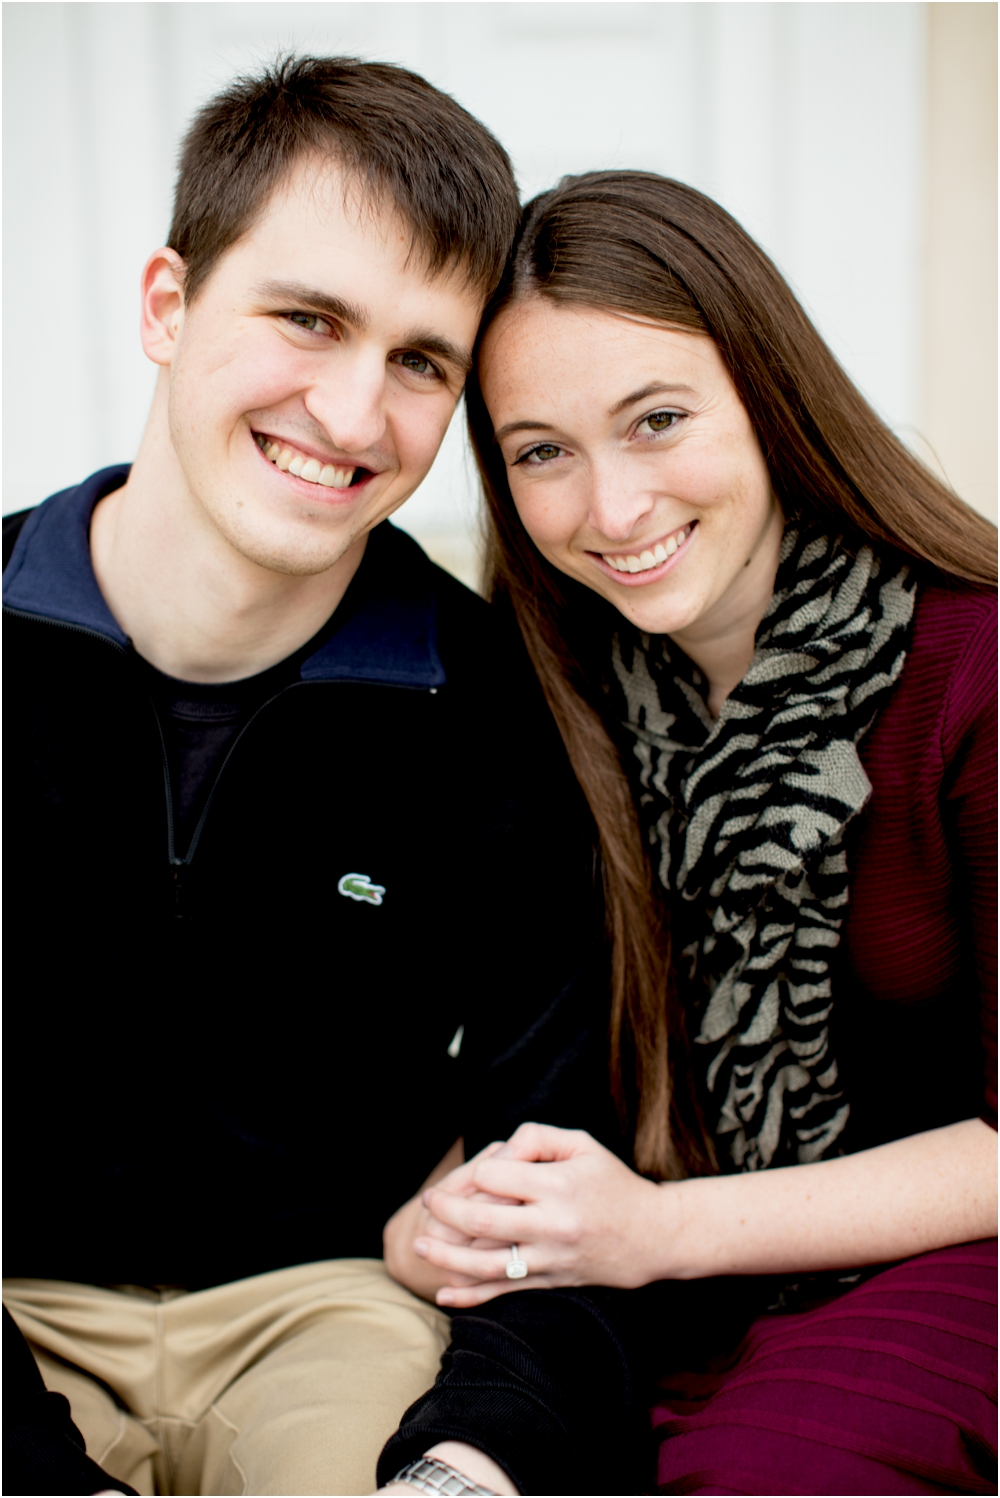 abby eric hampton mansion dulaney high school engagement session towson living radiant photograph photos_0042.jpg